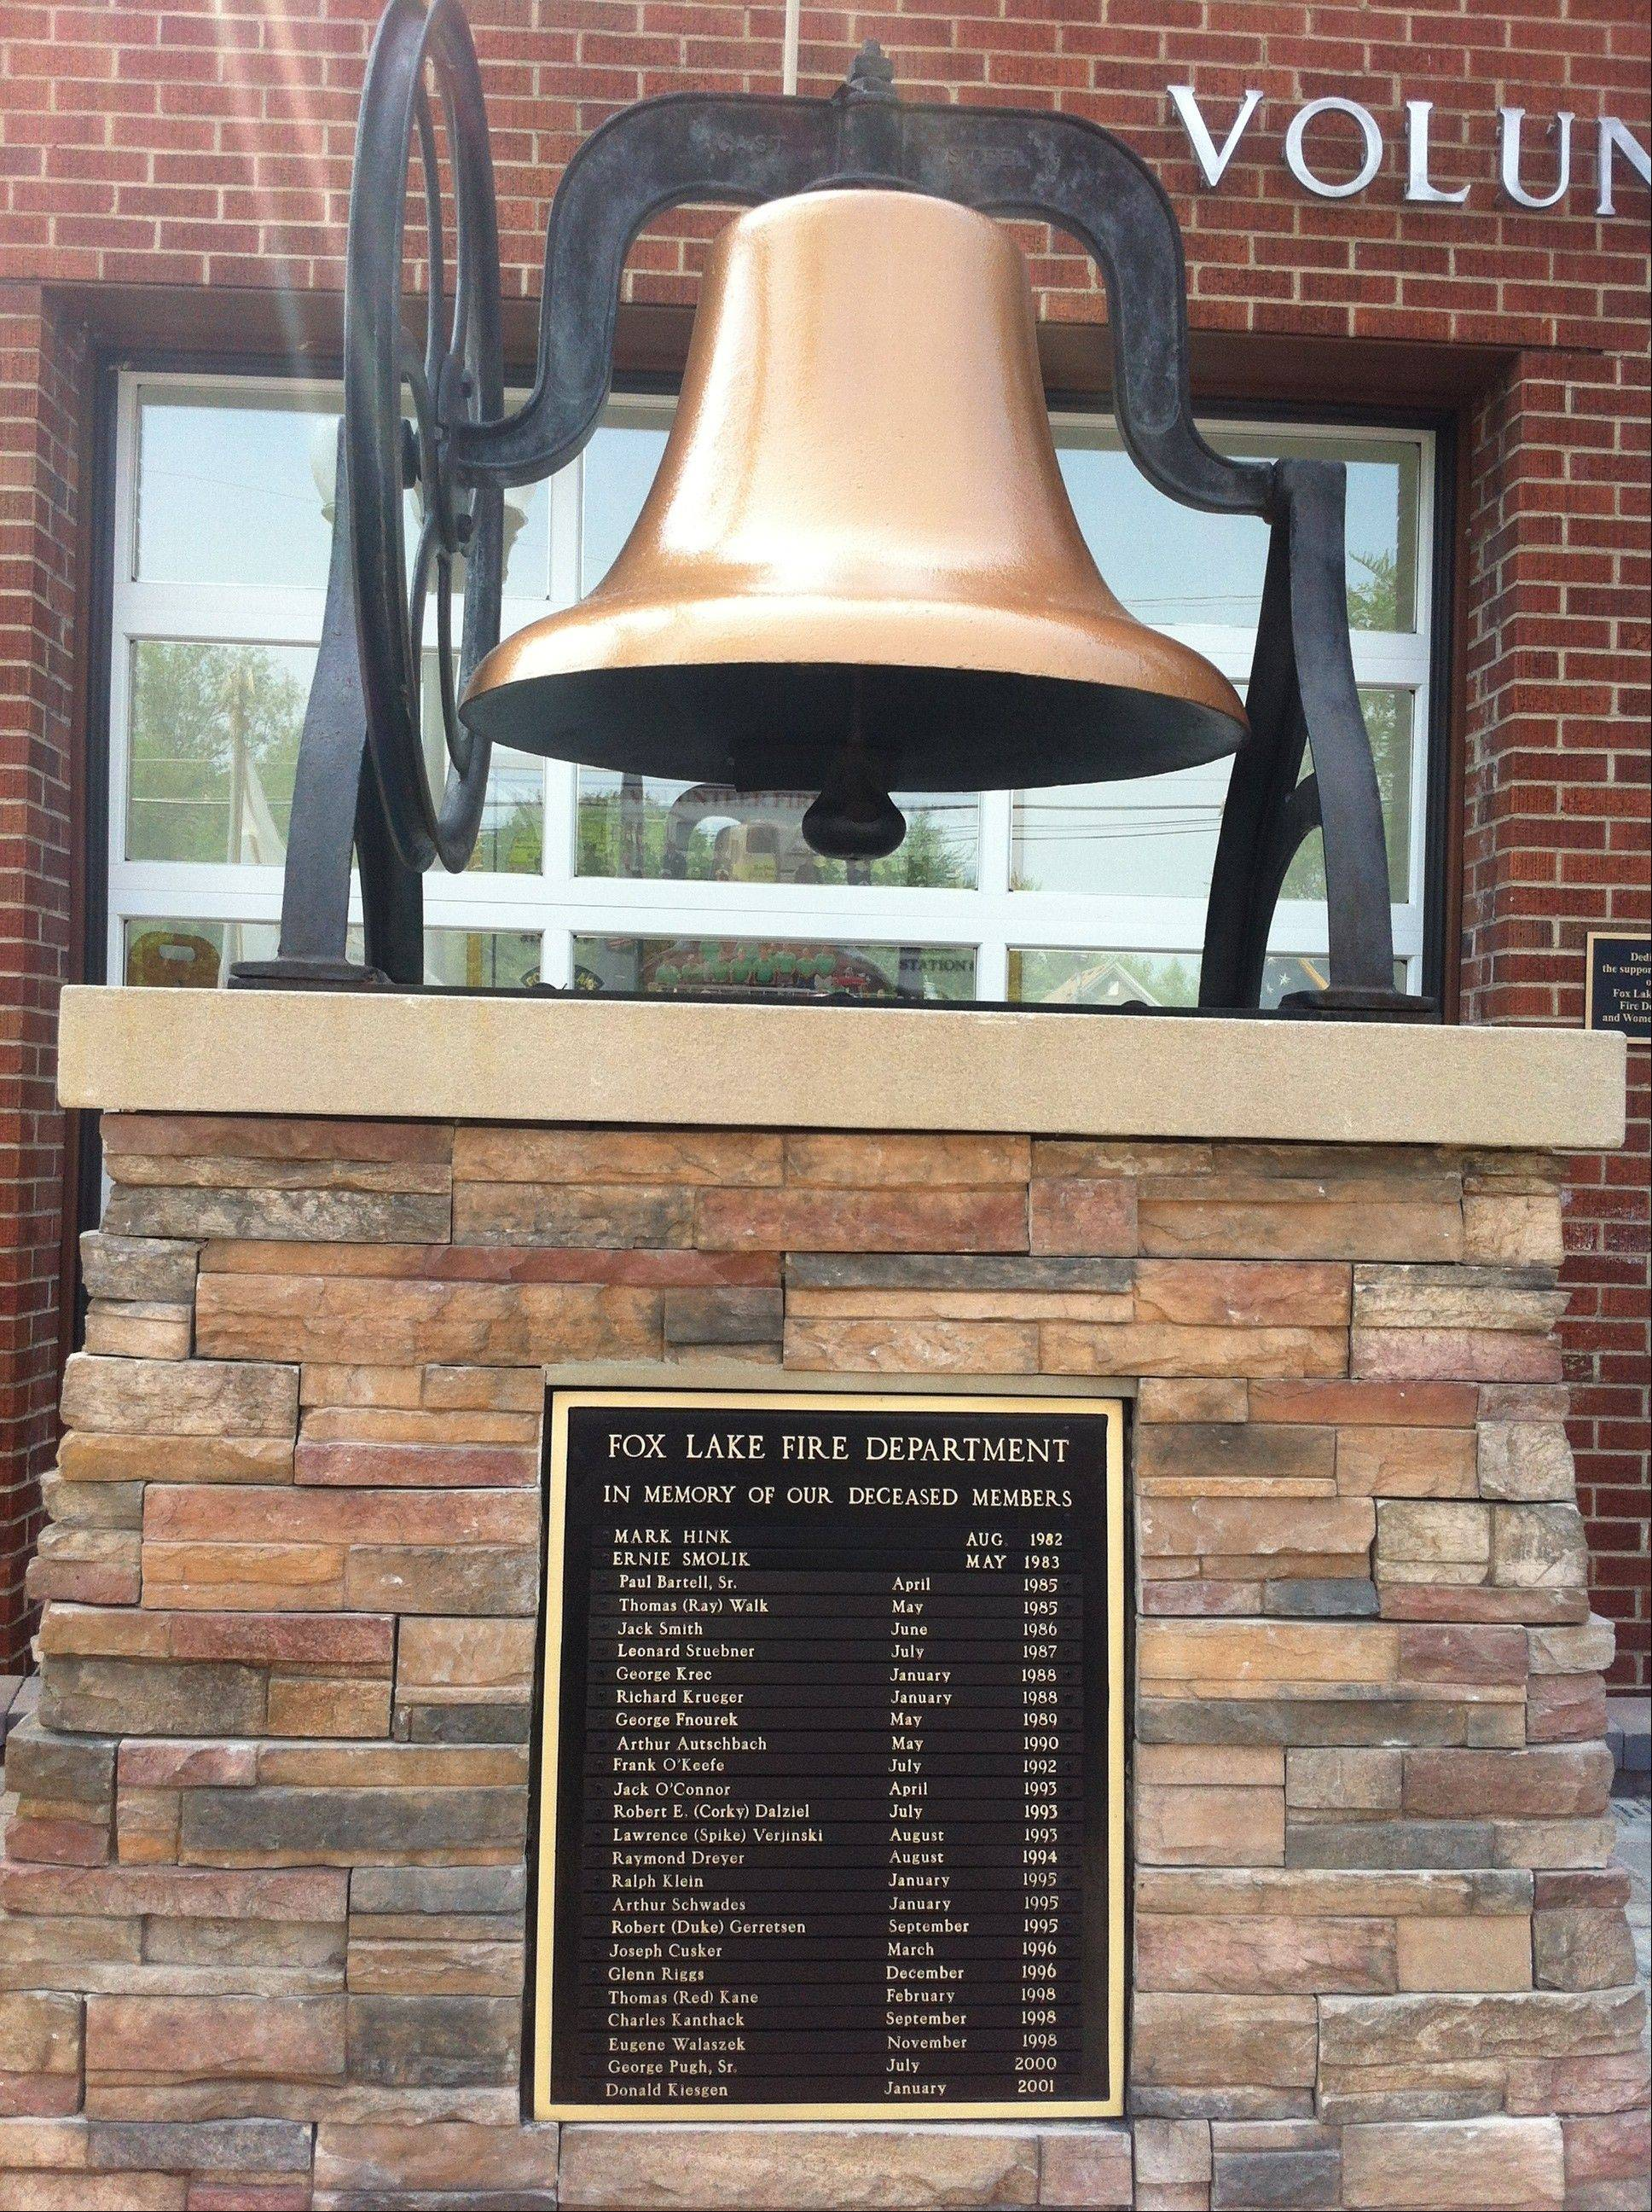 The original bell from the first Fox Lake Fire Department is now part of the memorial dedicated Sunday.